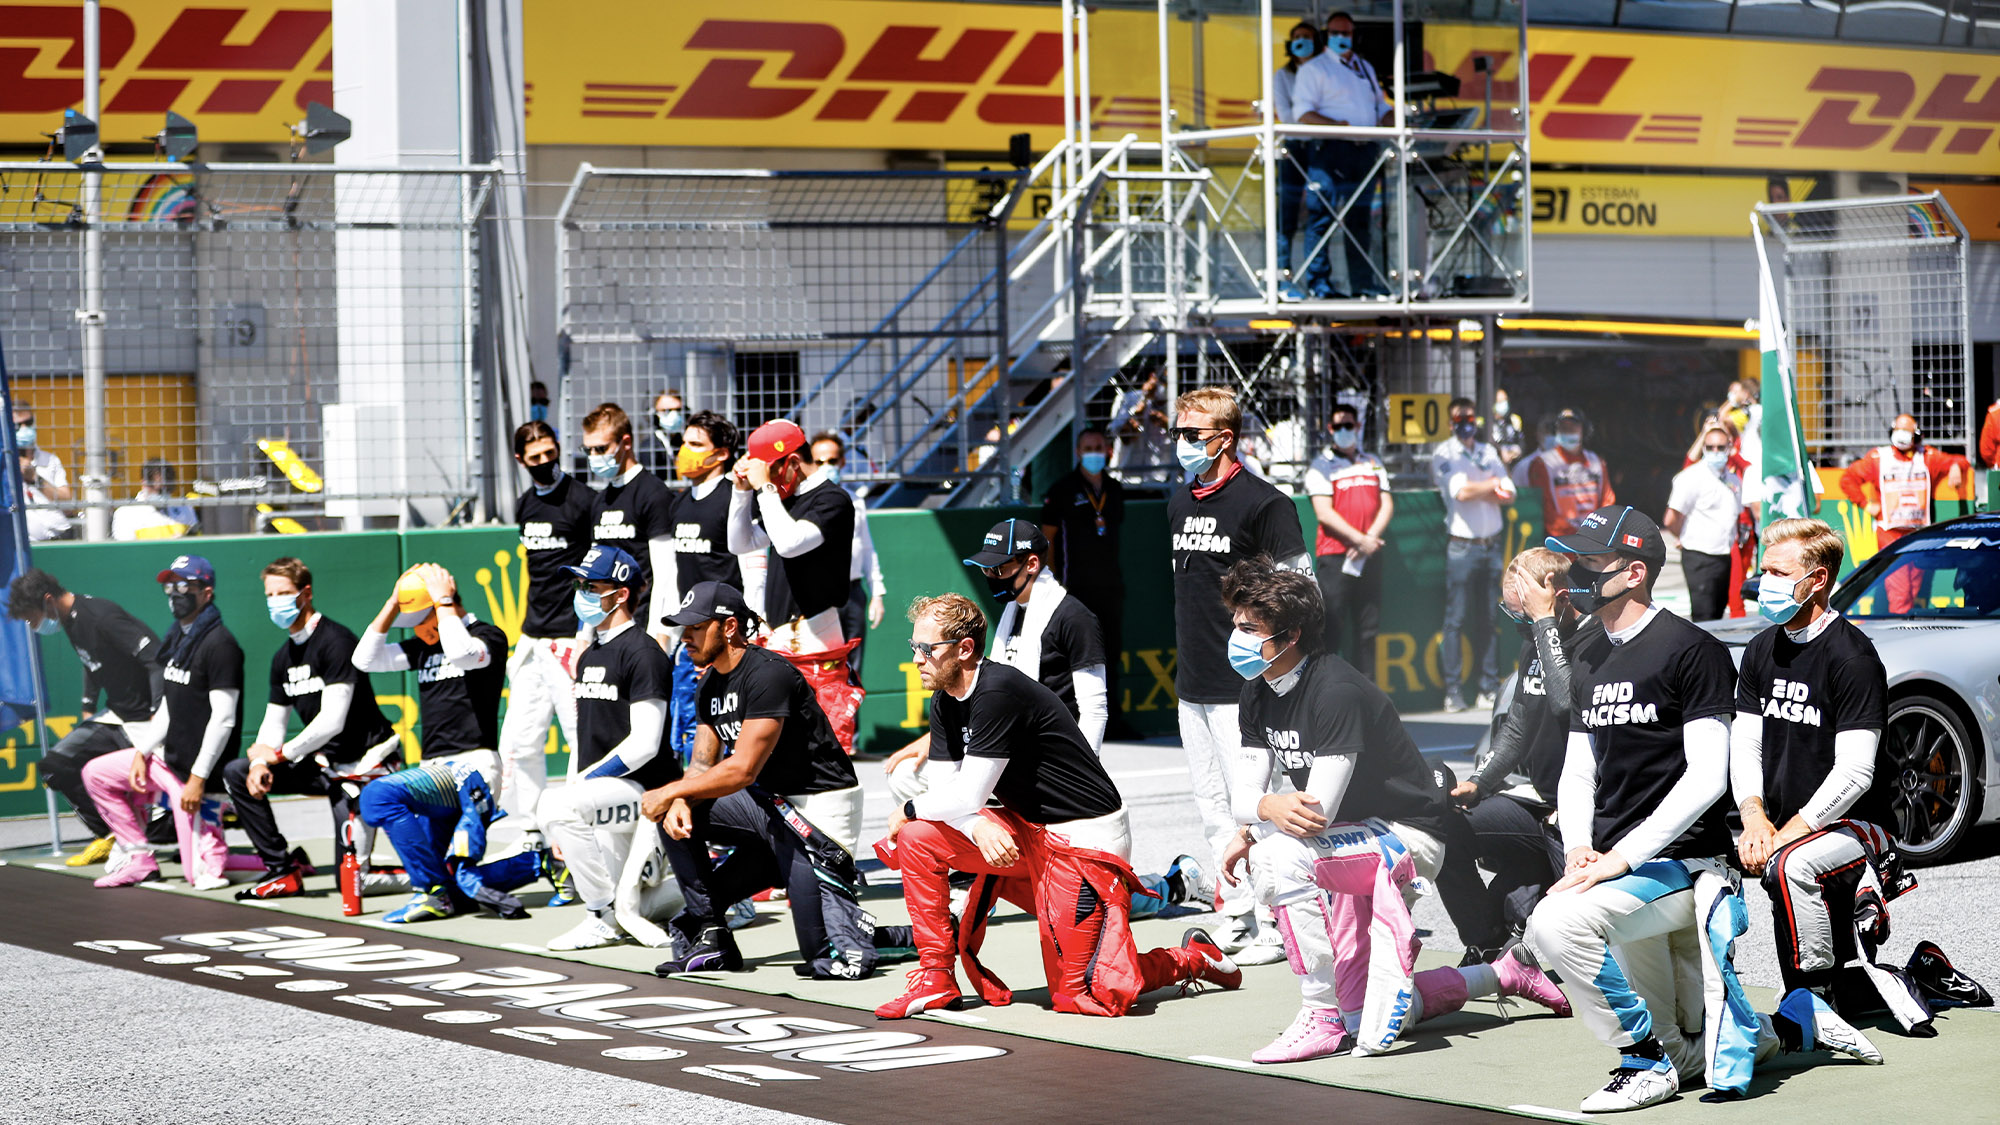 Drivers unite in making a statement against racism ahead of the 2020 Austrian Grand Prix